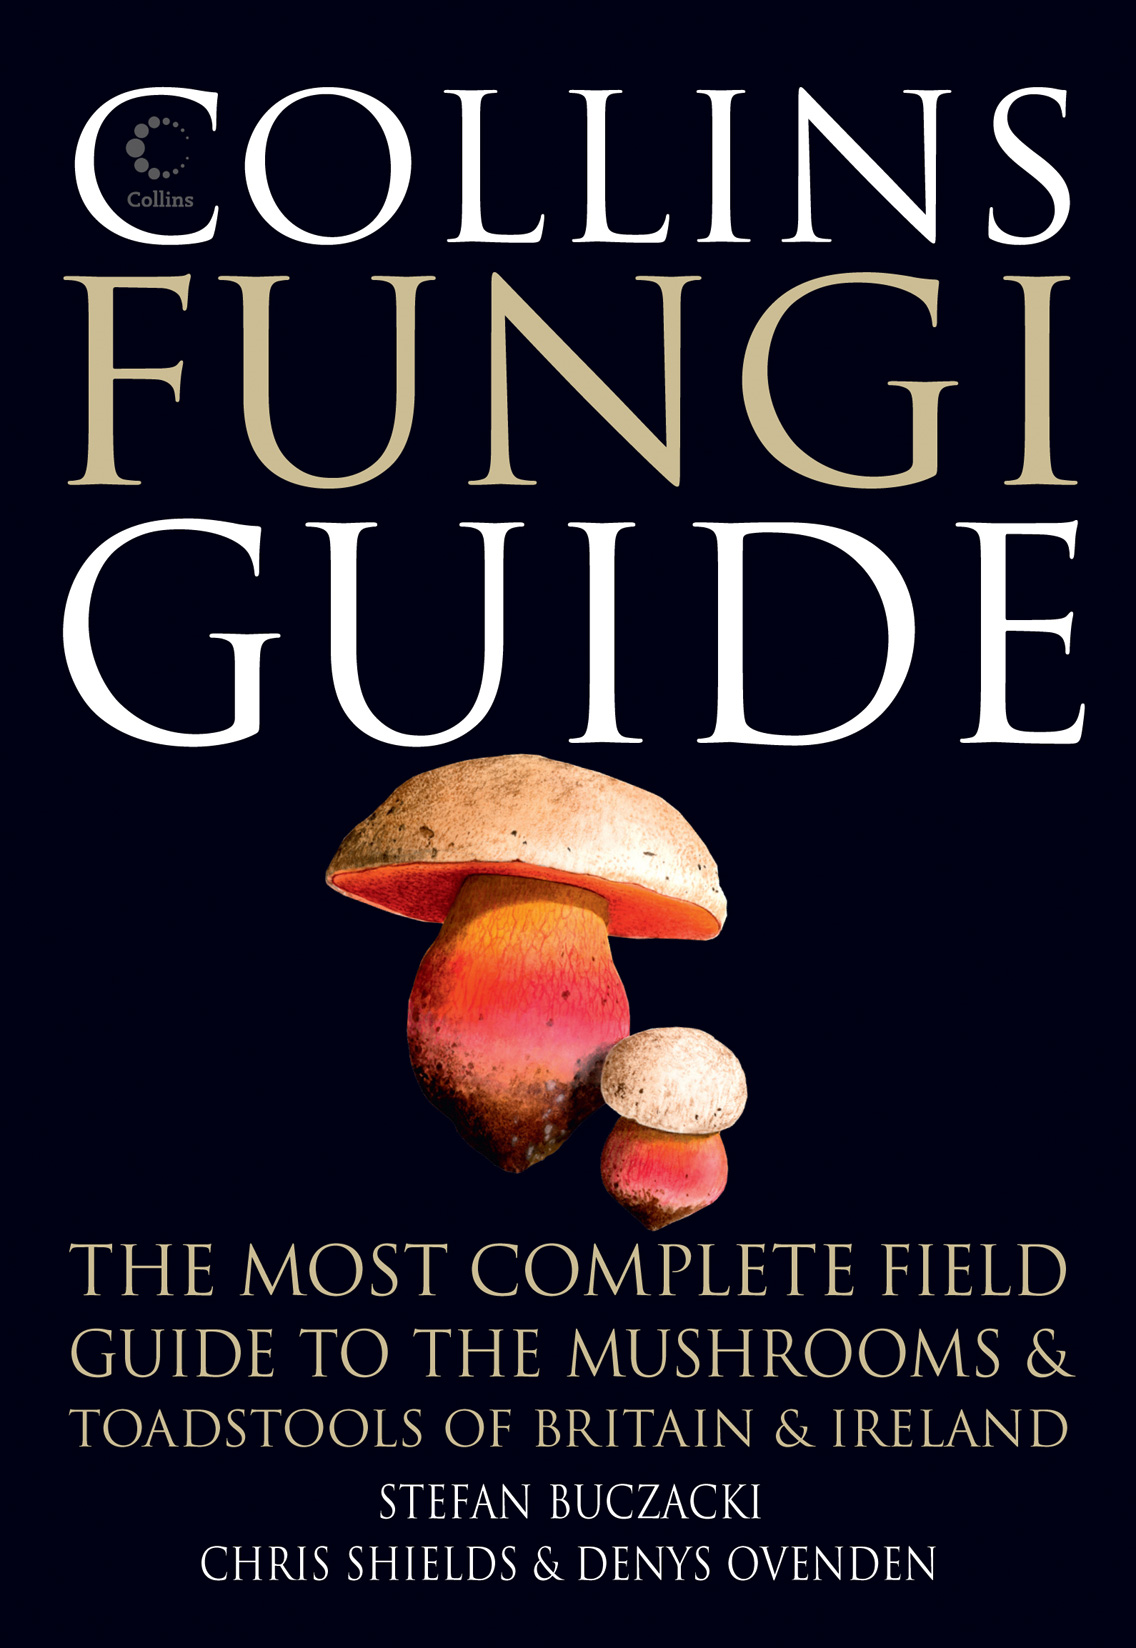 Collins Fungi Guide: The most complete field guide to the mushrooms and toadstools of Britain & Ireland